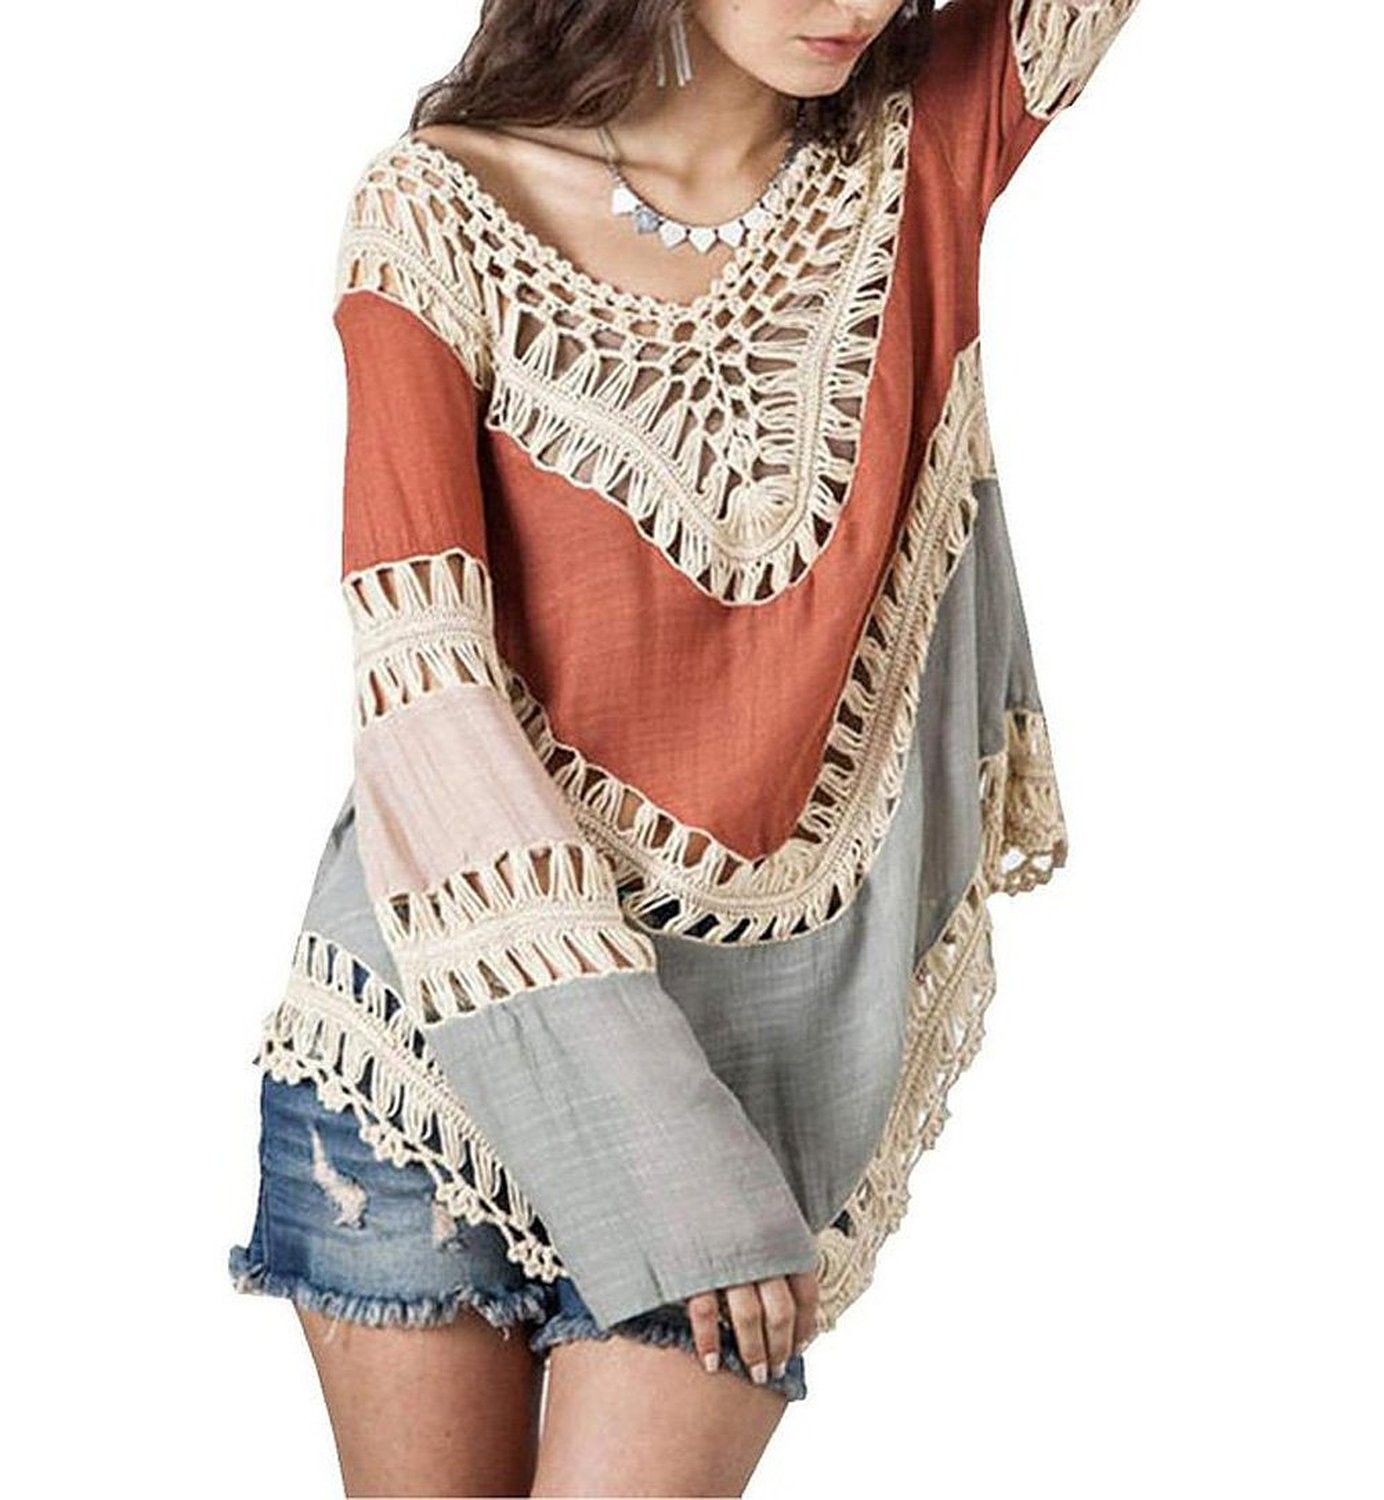 3e25af0e033f9 Get Quotations · Umgee Women's Crochet Lace Fringe Boho Bohemian Blouse Top  Frayed Blouse